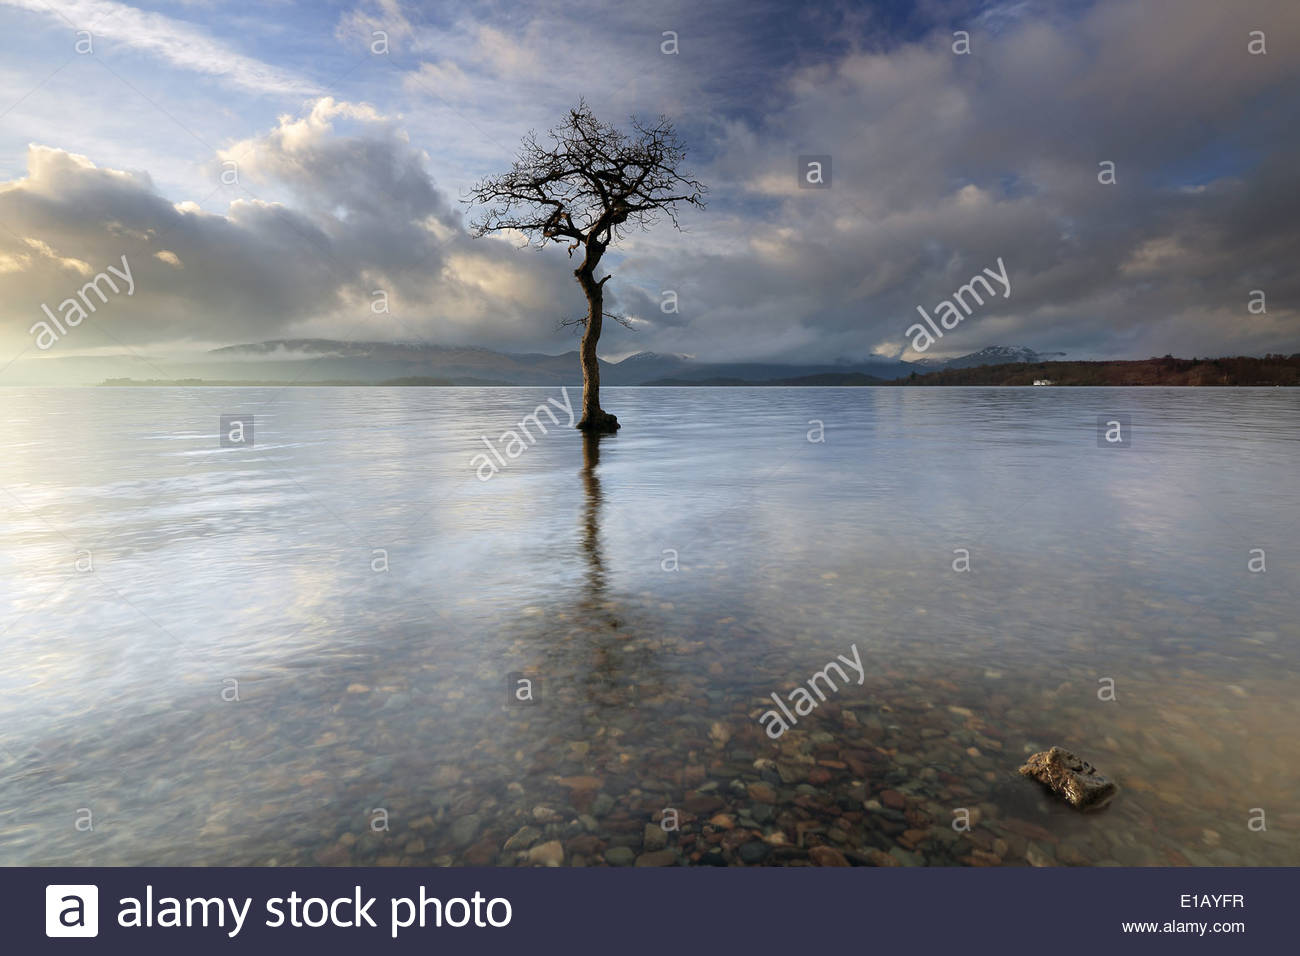 Lone tree in water - Stock Image